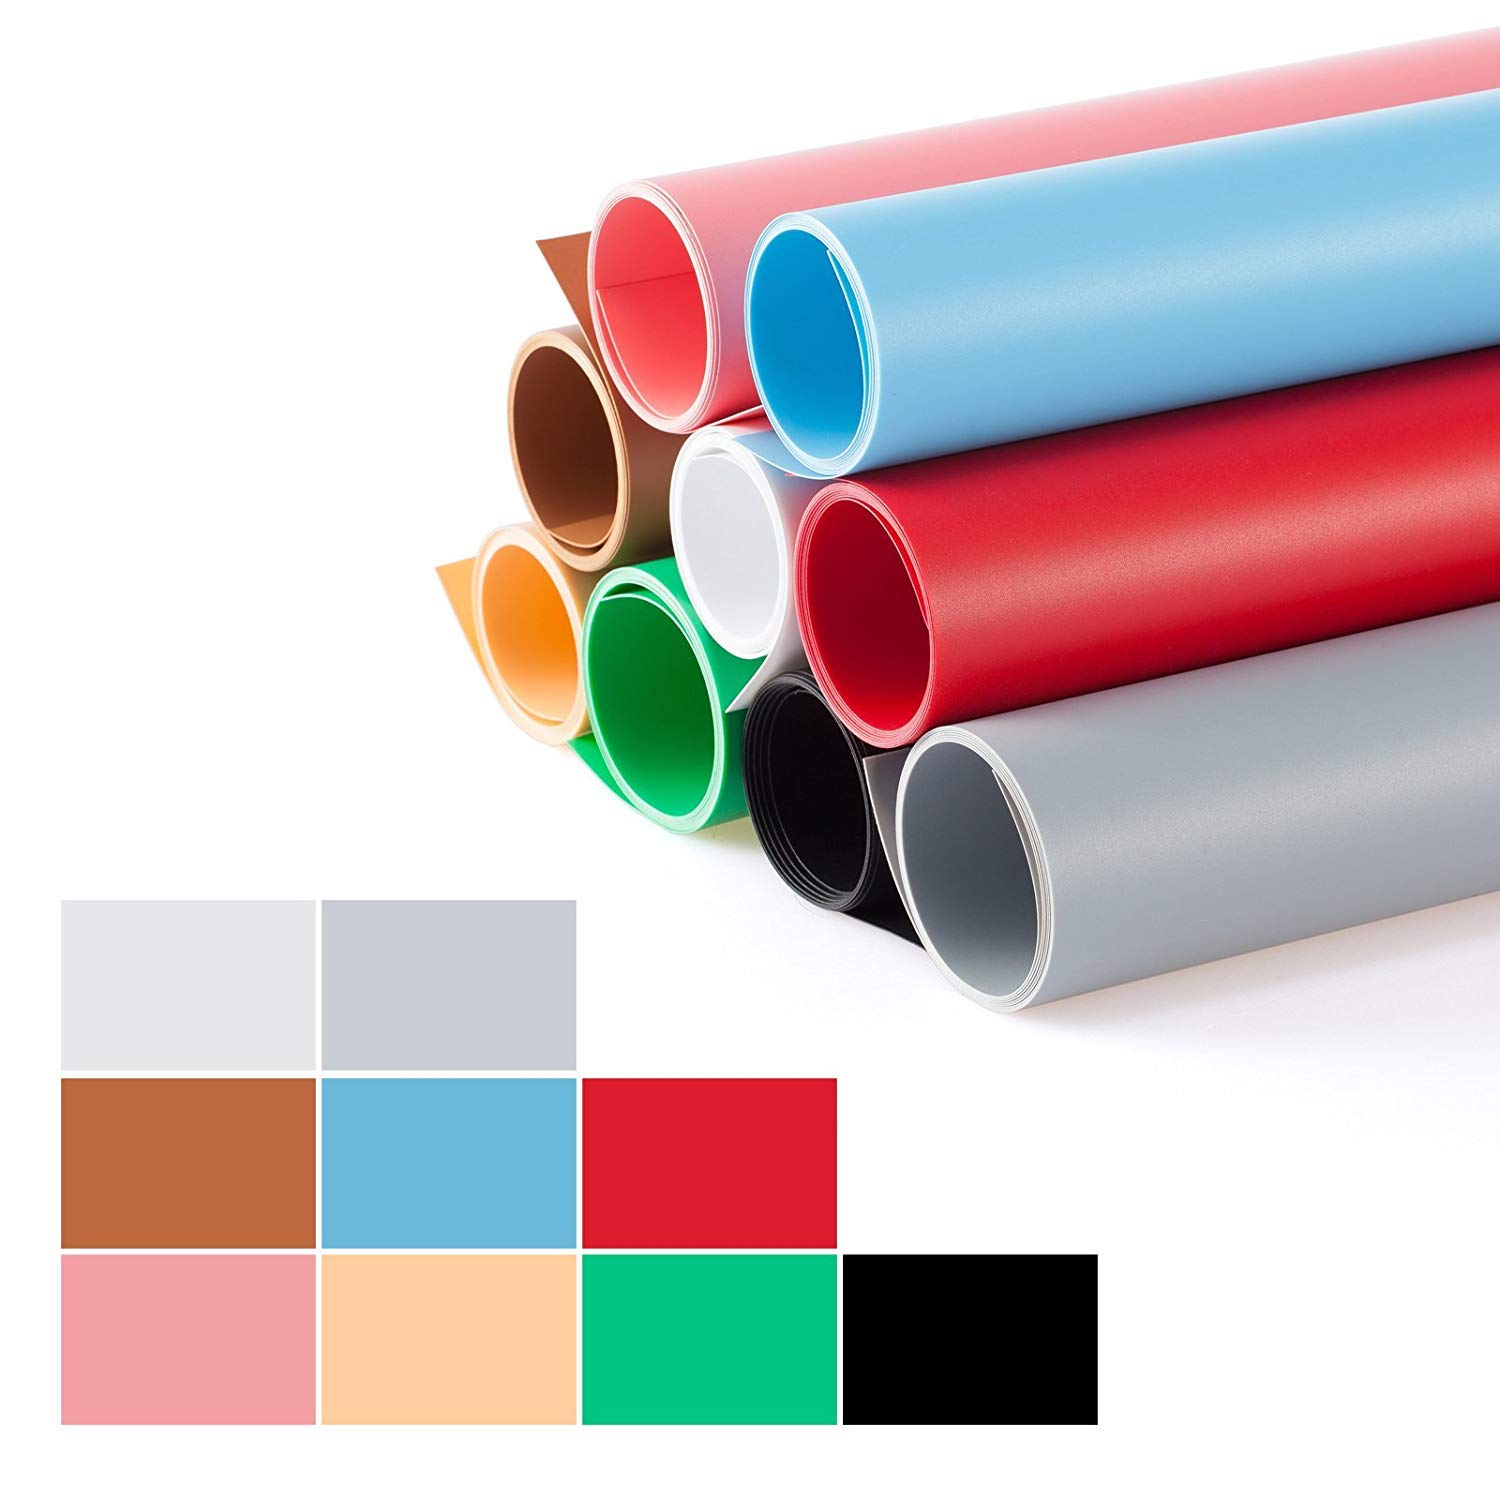 Meking 27x51inch (68x130cm) Photography Backdrop Matte PVC Background Paper Kit for Photo Video Photography Studio, 9 in 1 kit